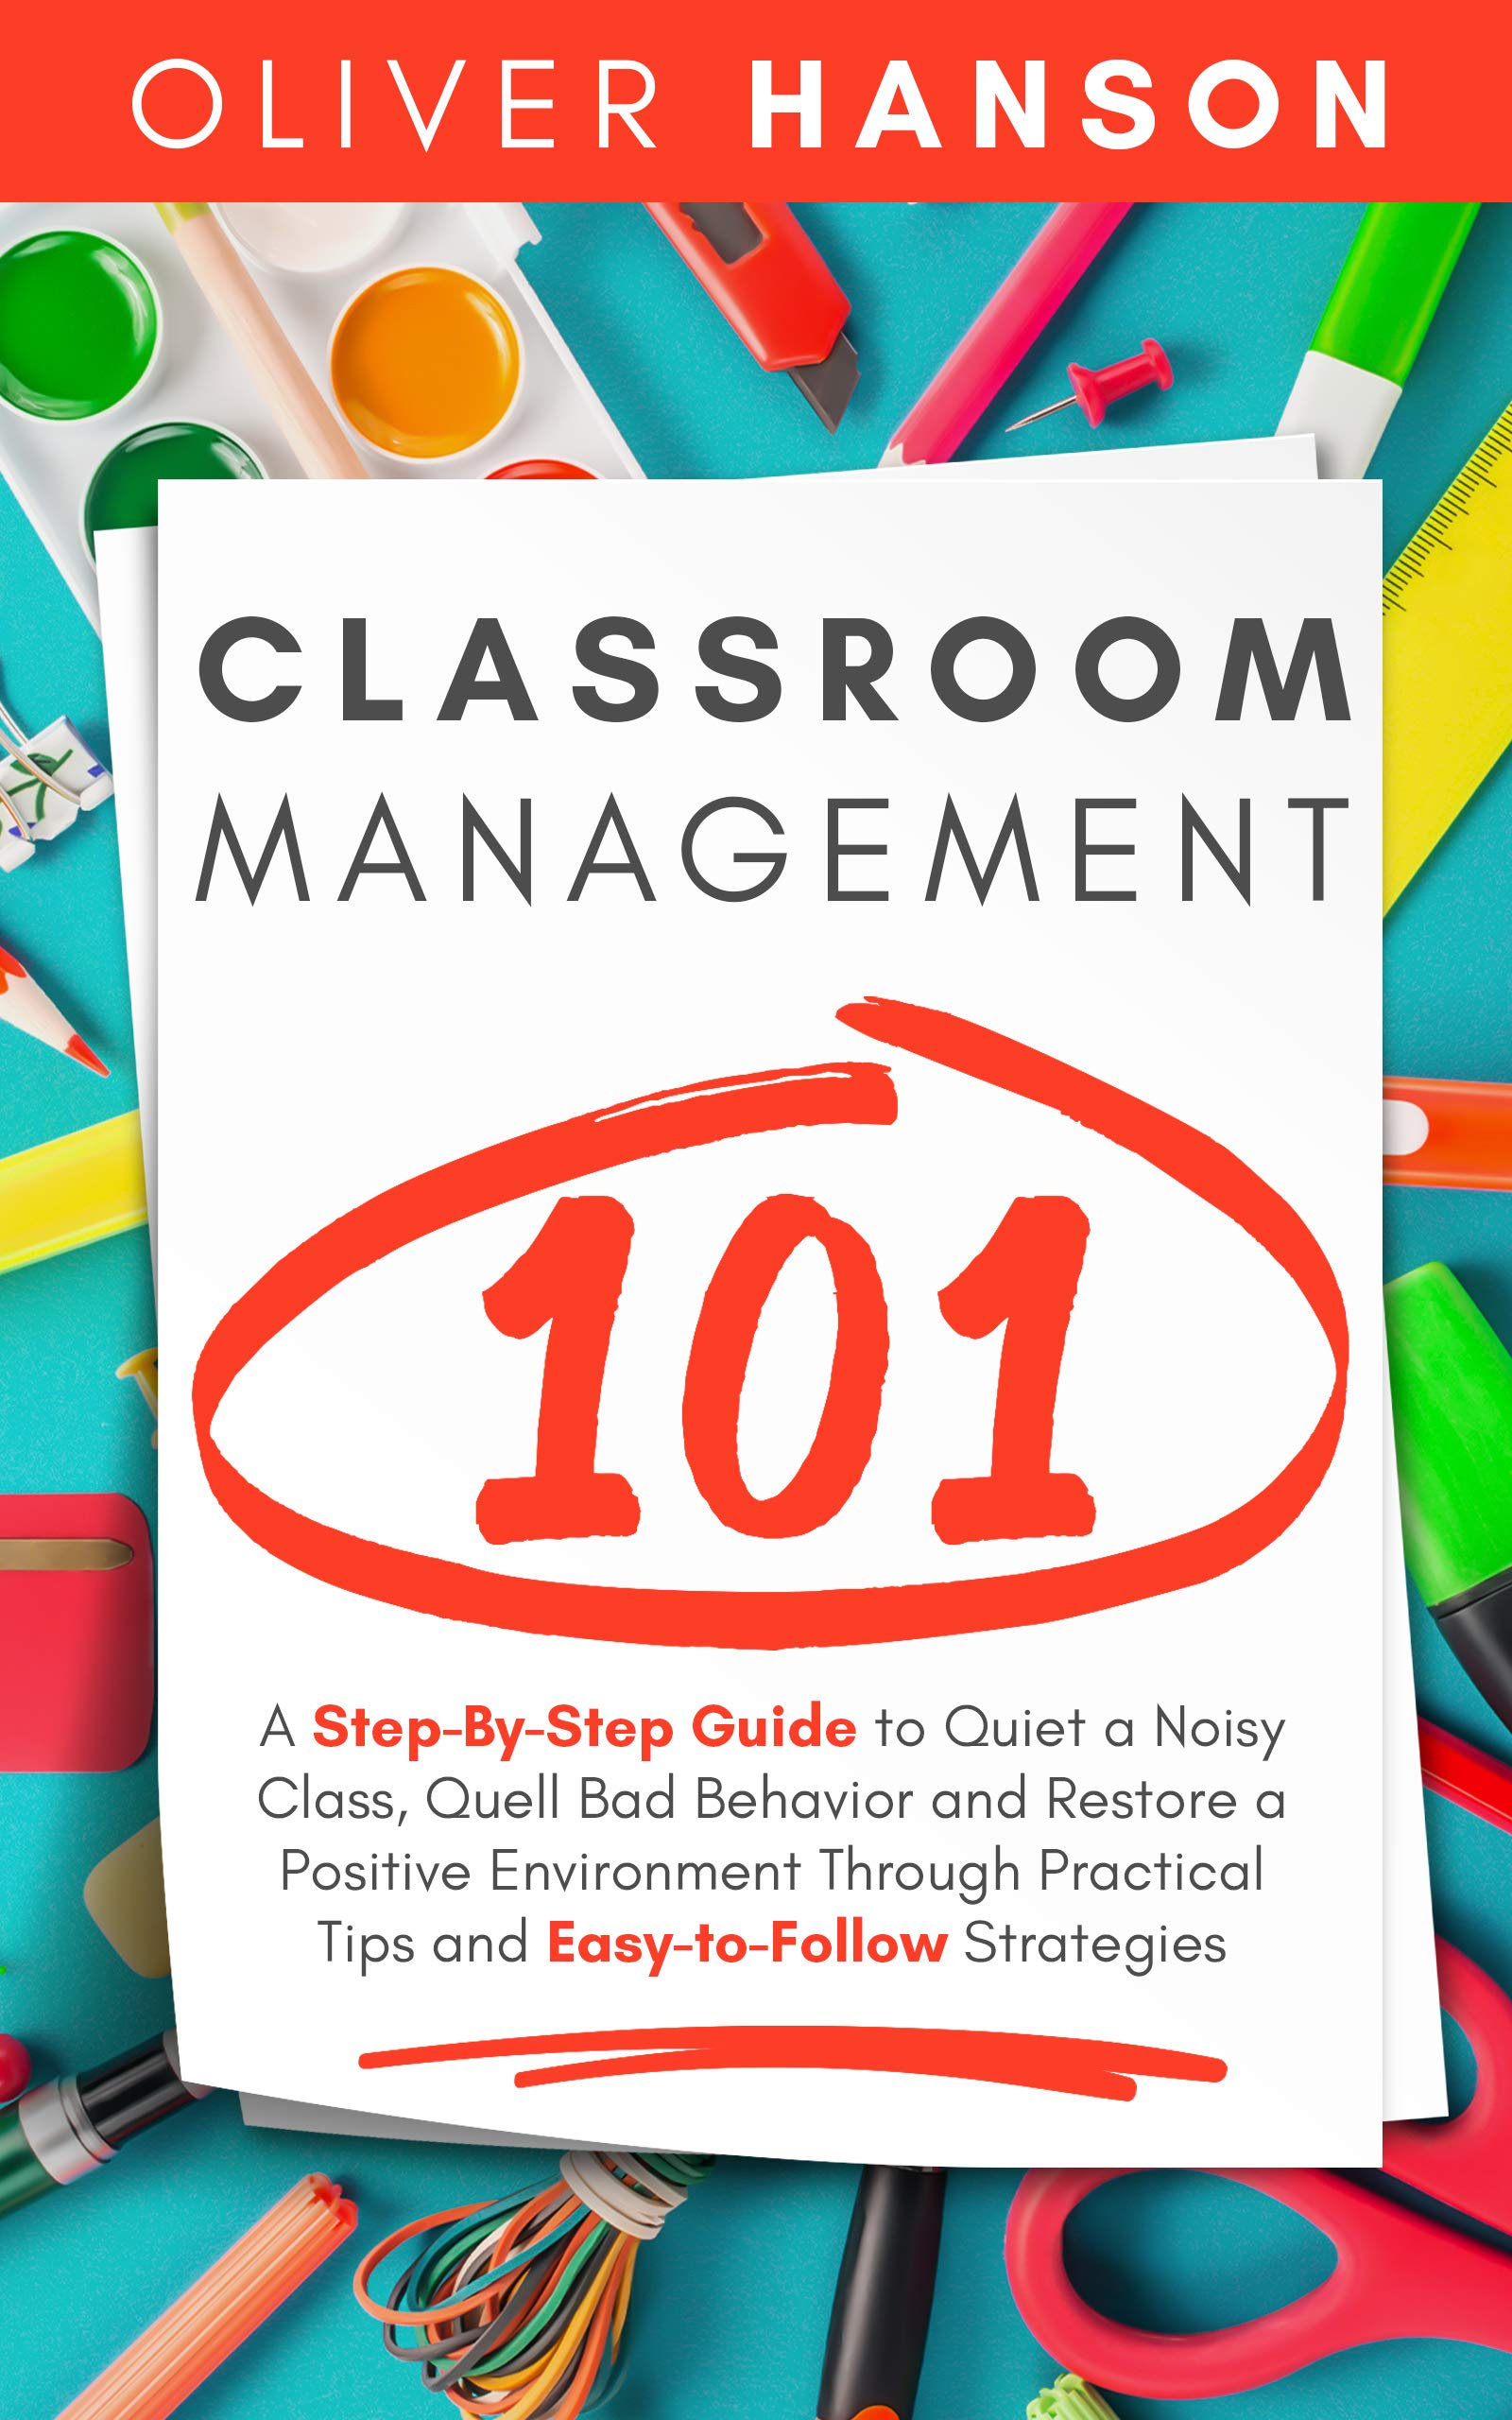 Classroom Management 101  A Step By Step Guide To Quiet A Noisy Class Quell Bad Behavior And Restore A Positive Environment Through Practical Tips And Easy To Follow Strategies  English Edition